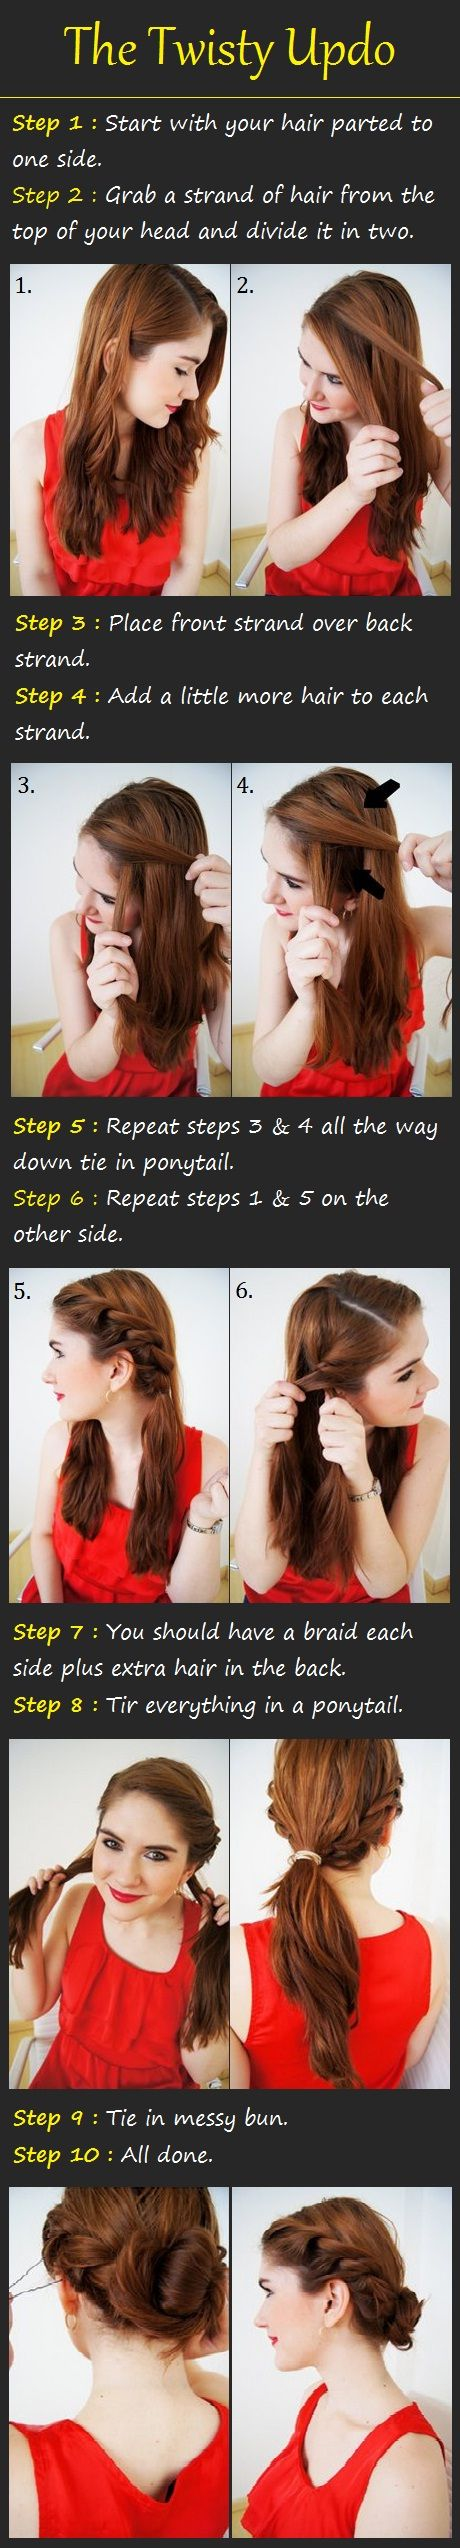 Twisty Updo Tutorial. I want to be able to do this!!